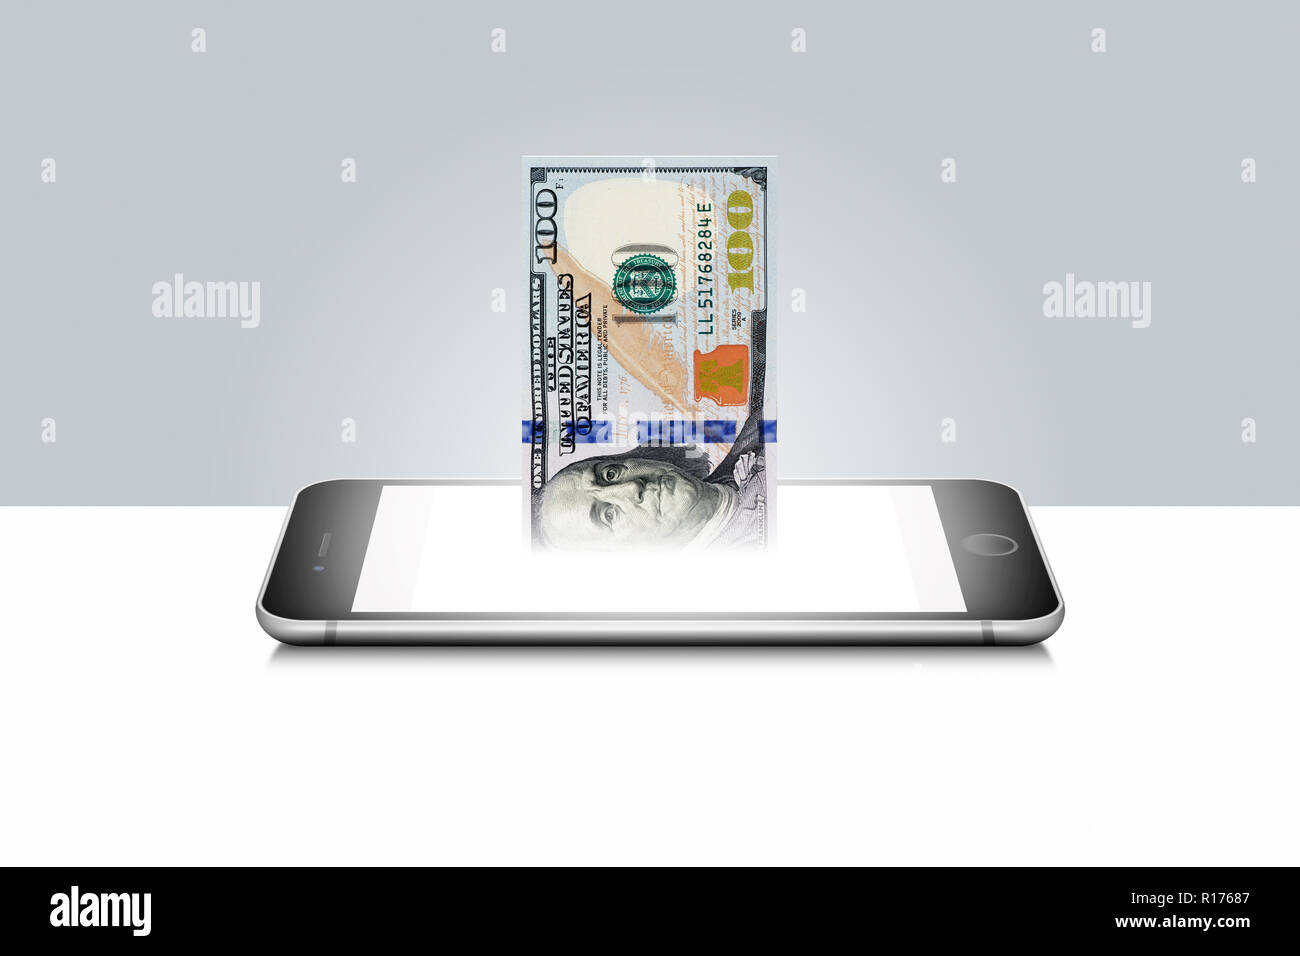 100 US dollar bill emerging from illuminated mobile phone Stock Photo